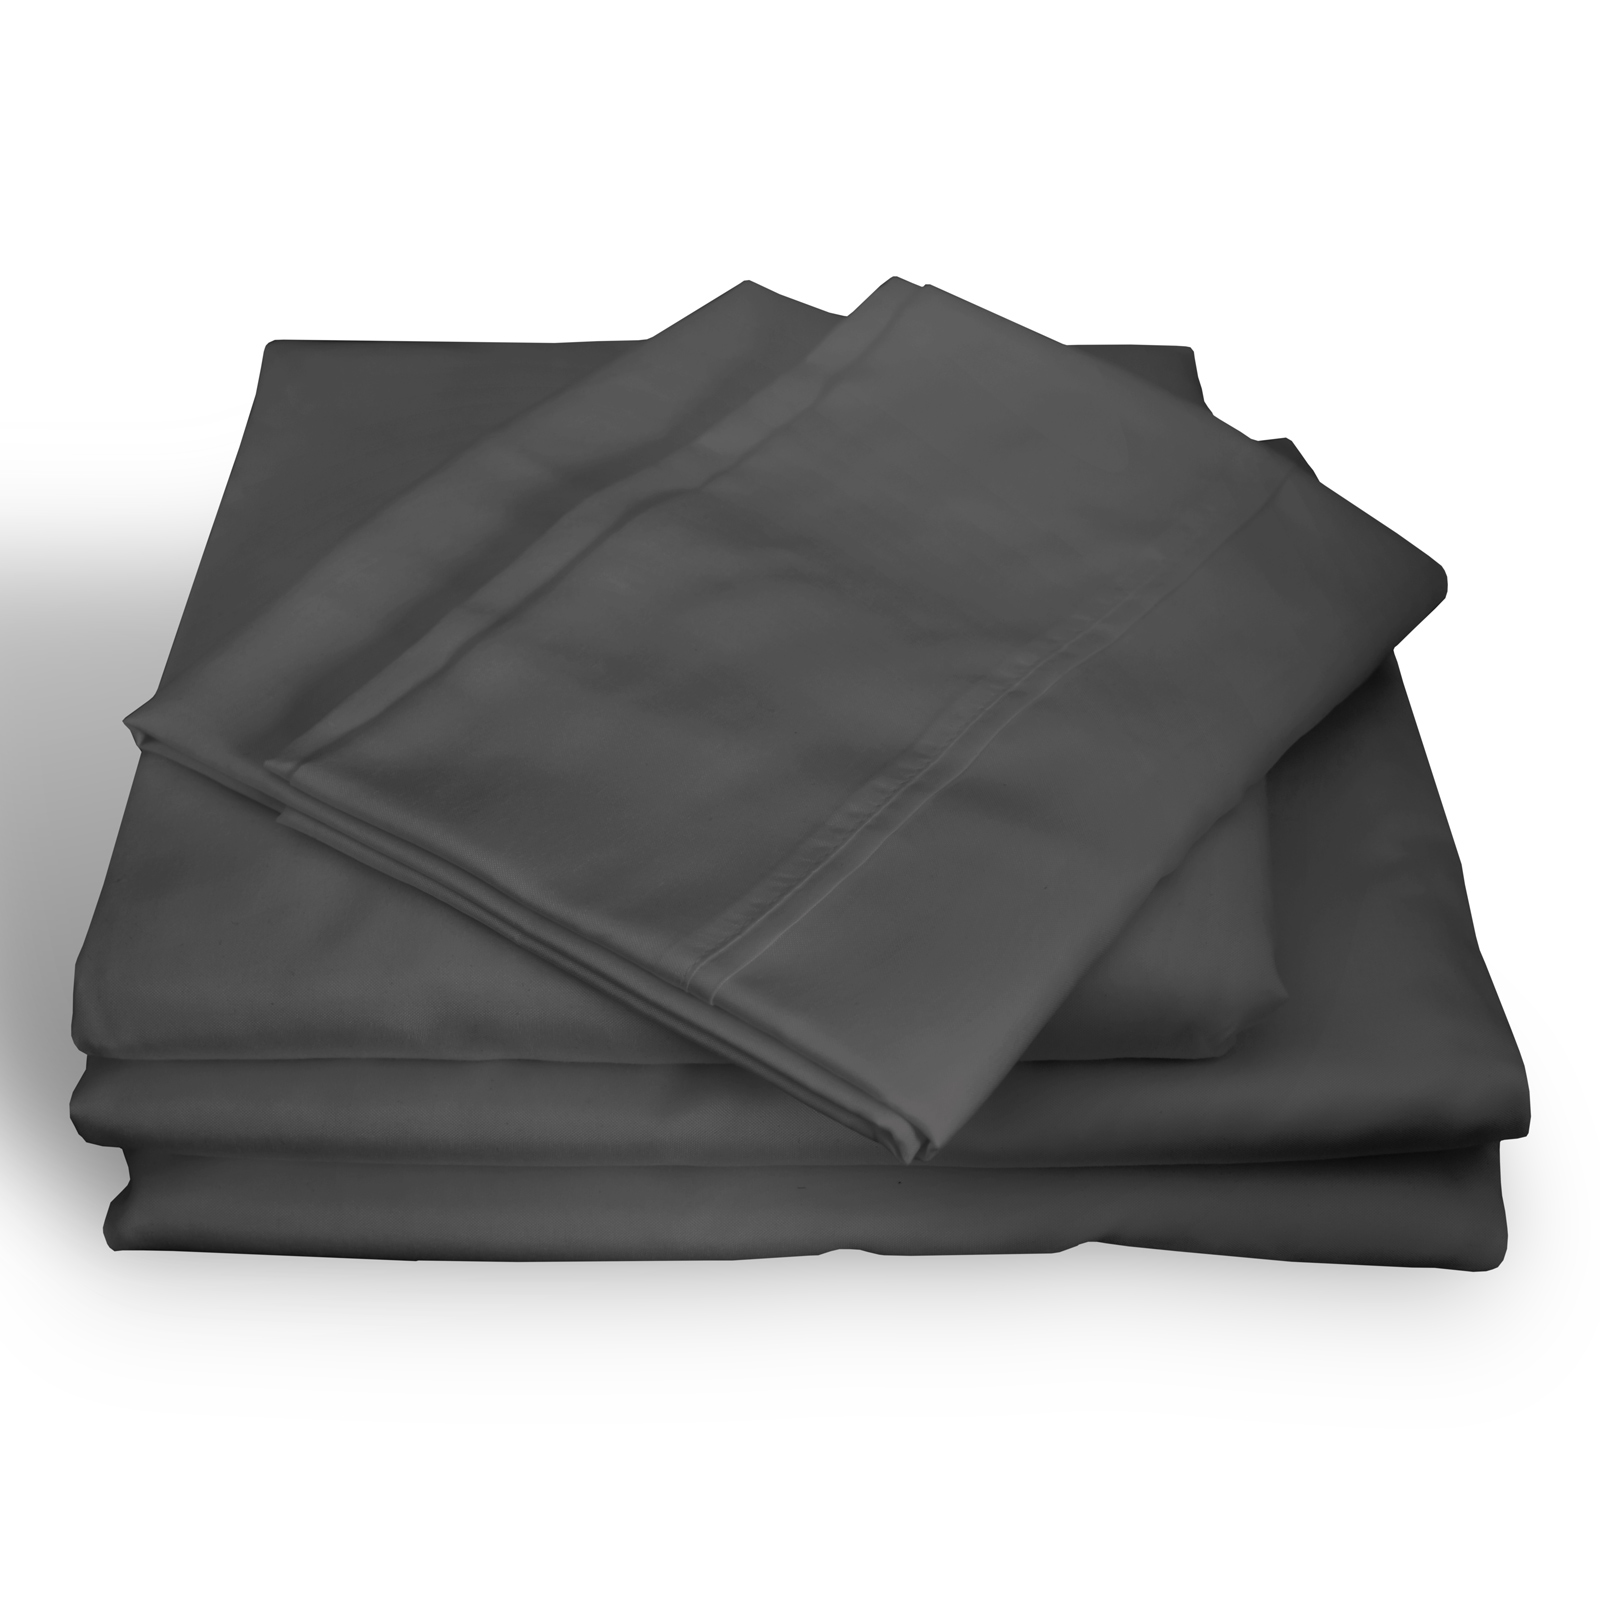 thumbnail 66 - Royal Comfort 1000TC Hotel Grade Bamboo Cotton Sheets Pillowcases Set Ultrasoft